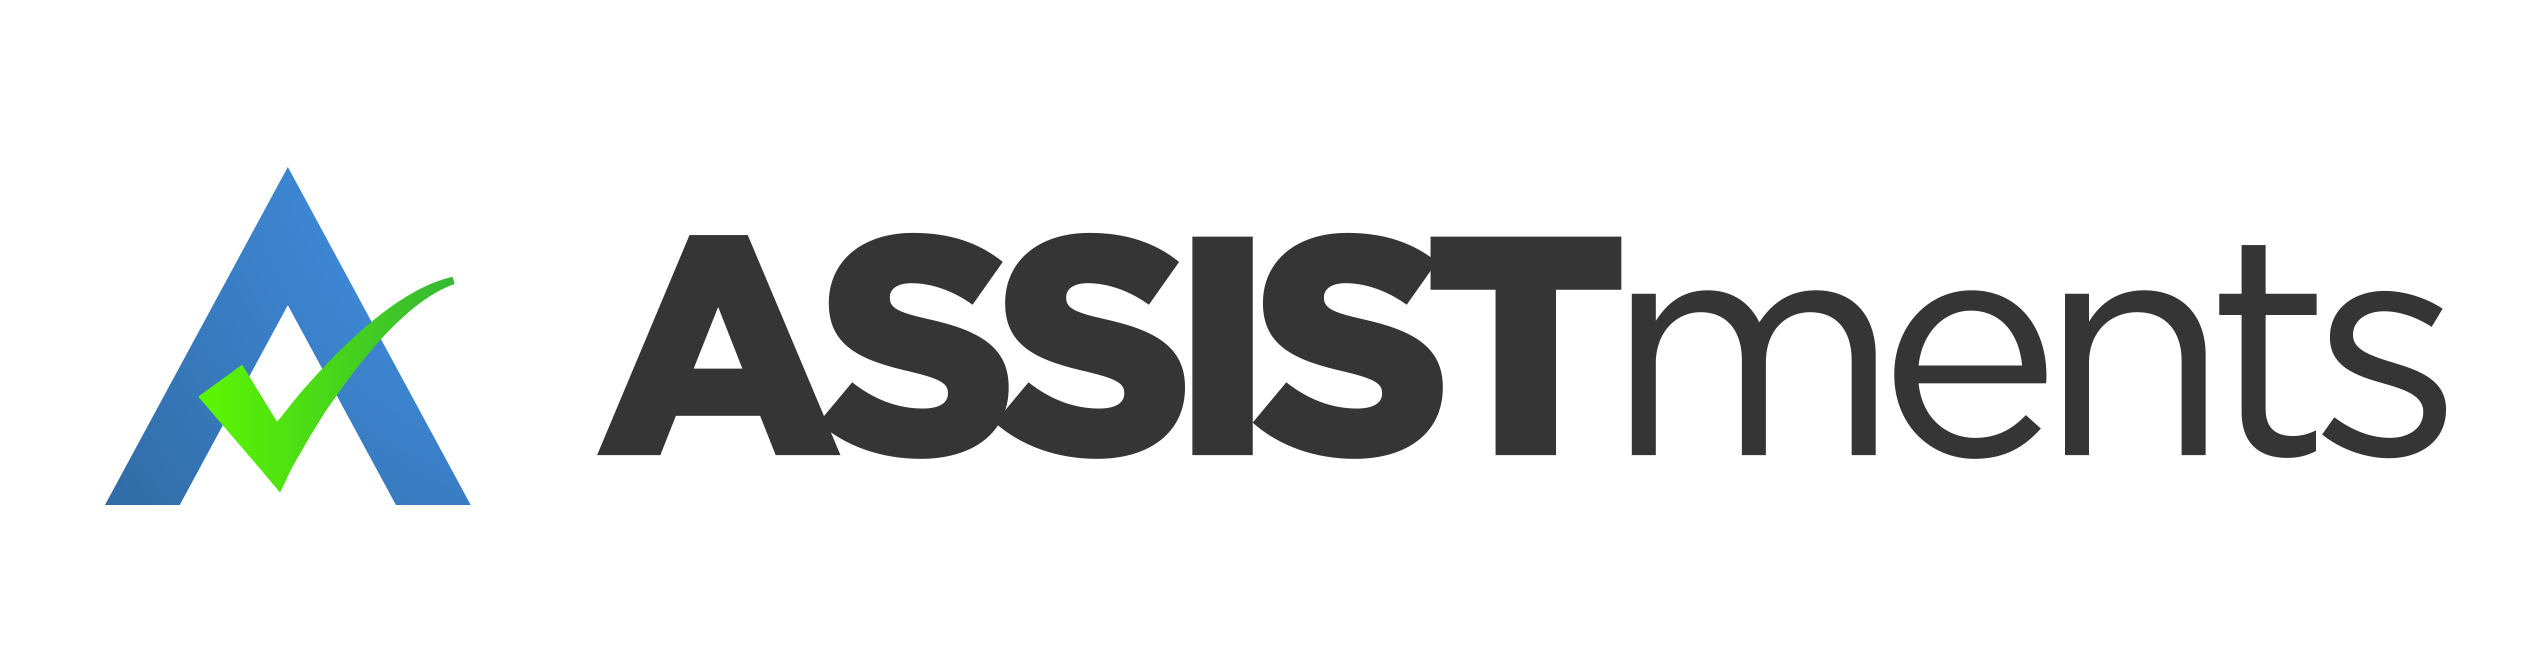 Assistments Main Logo